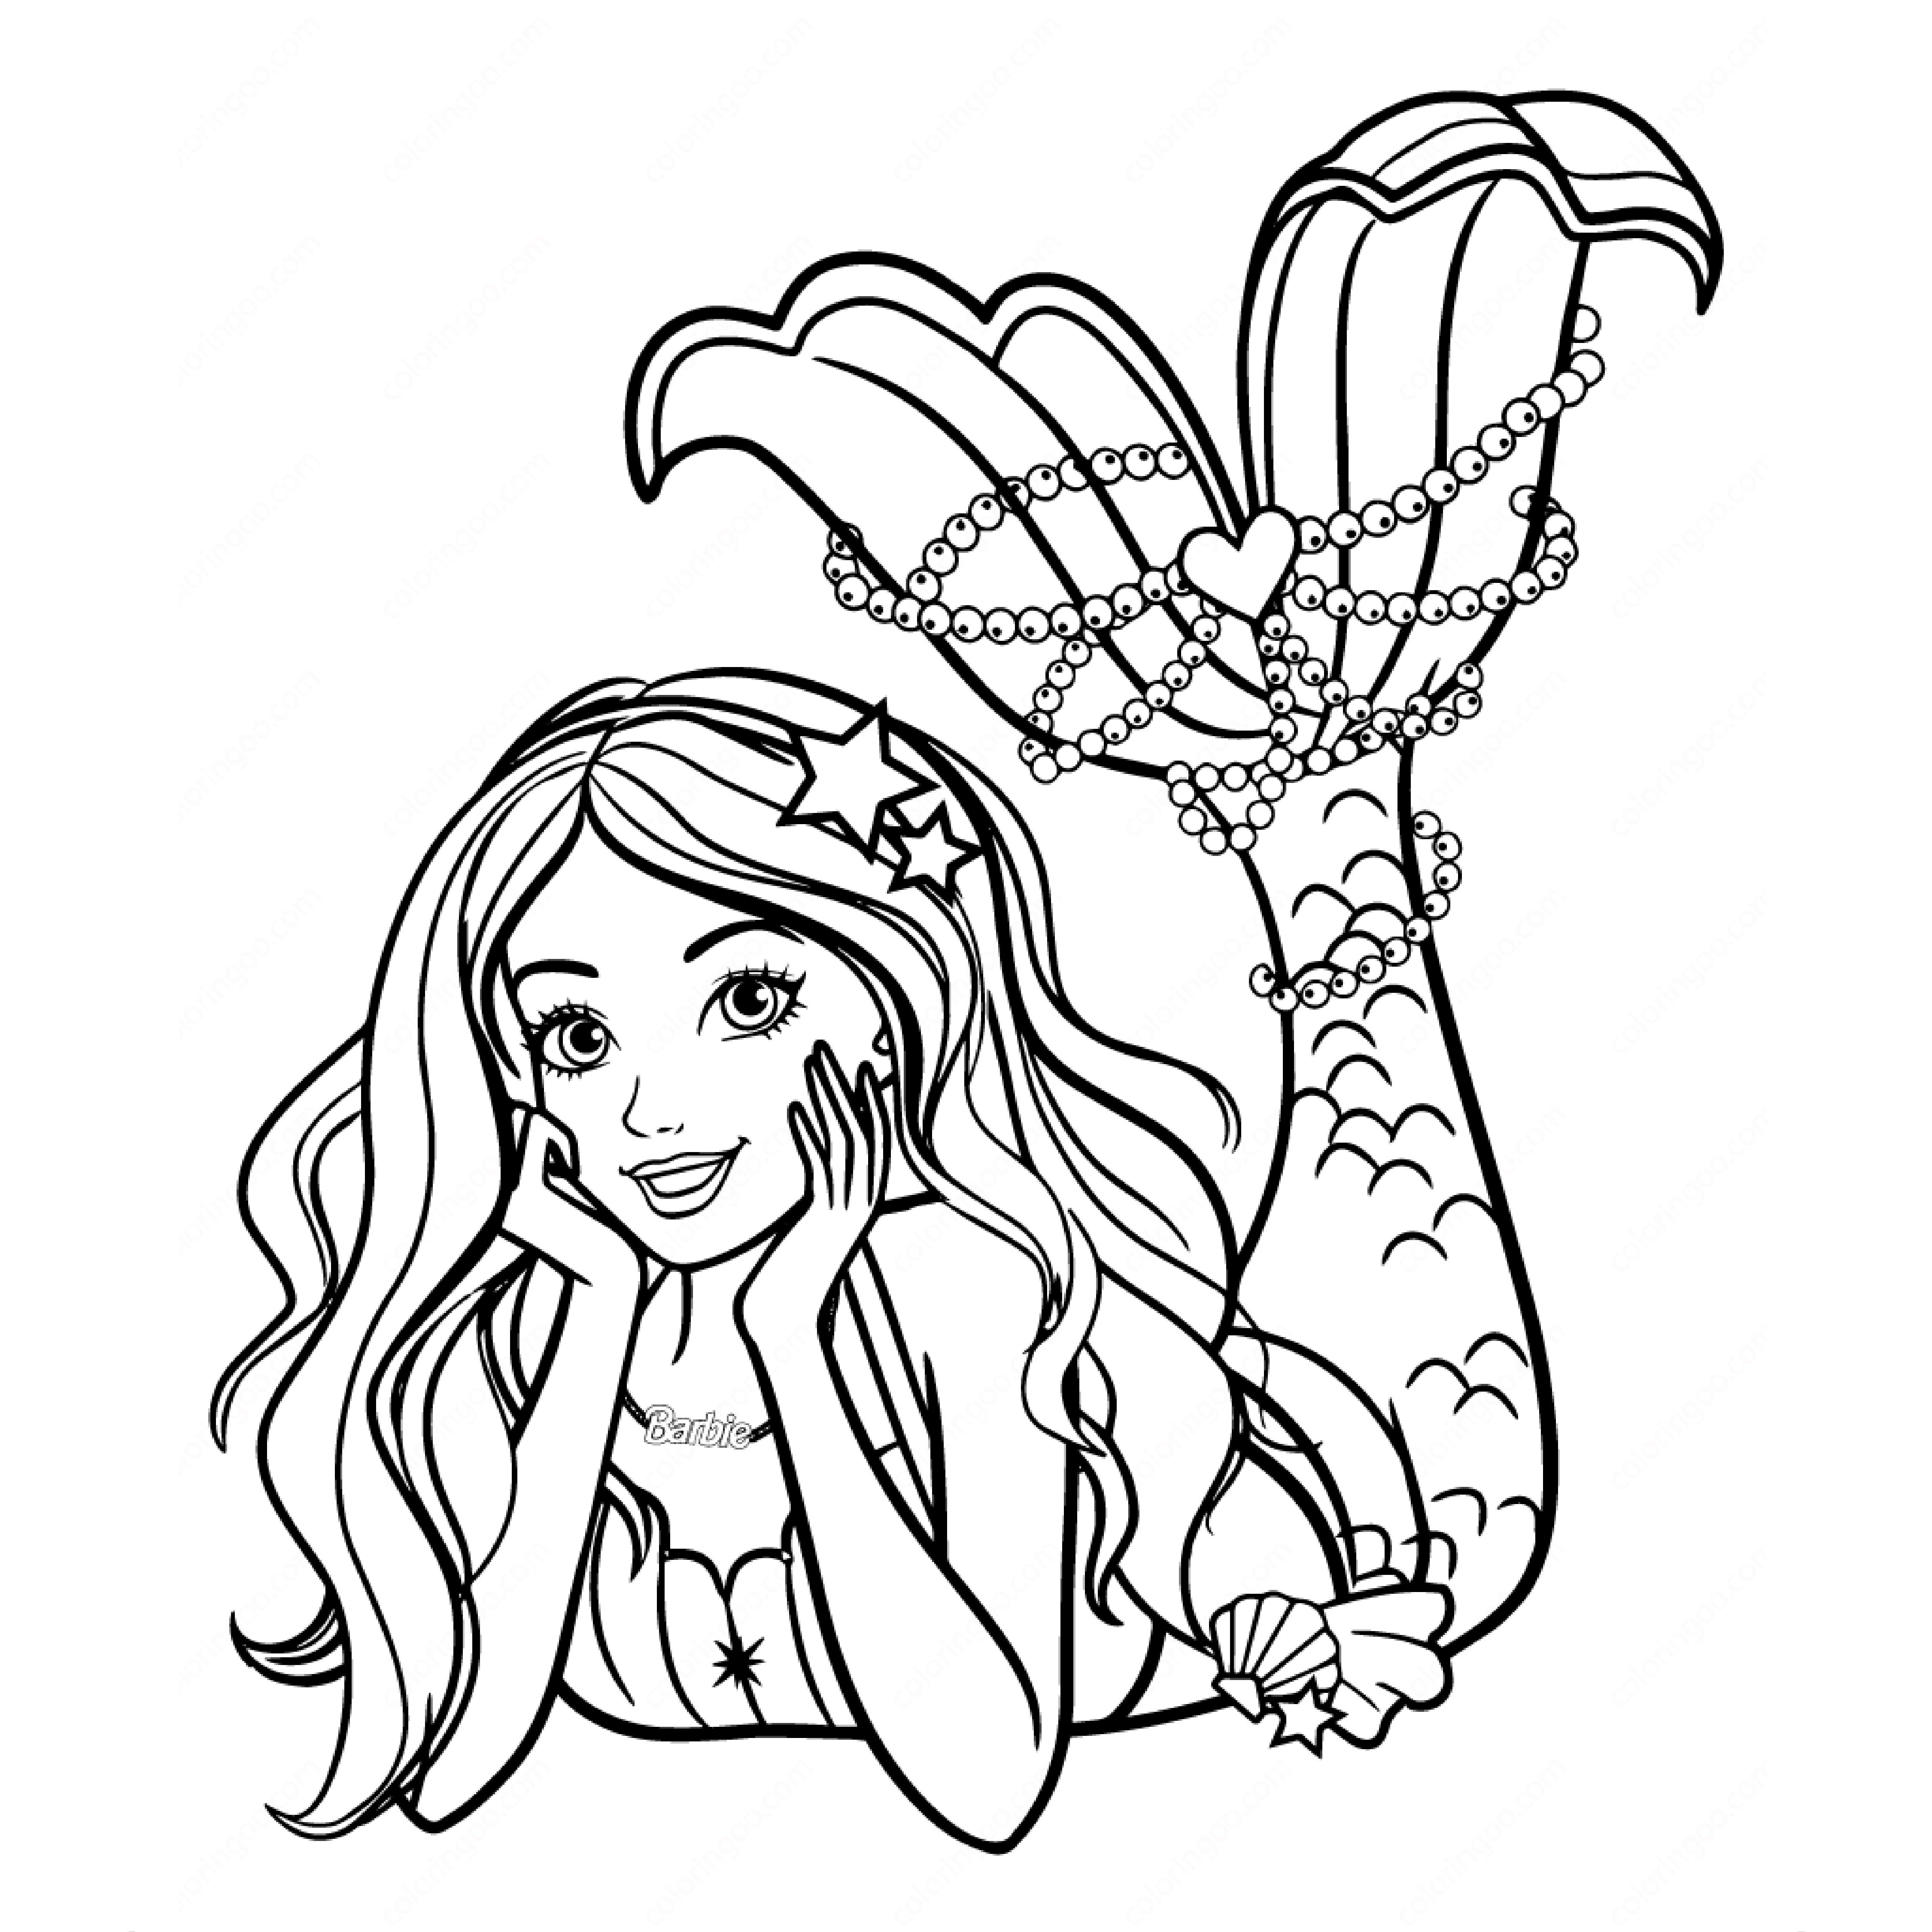 Kishorbiswas I Will Design Coloring Pages For Kids With Animals For 5 On Fiverr Com In 2021 Mermaid Coloring Book Mermaid Coloring Barbie Coloring